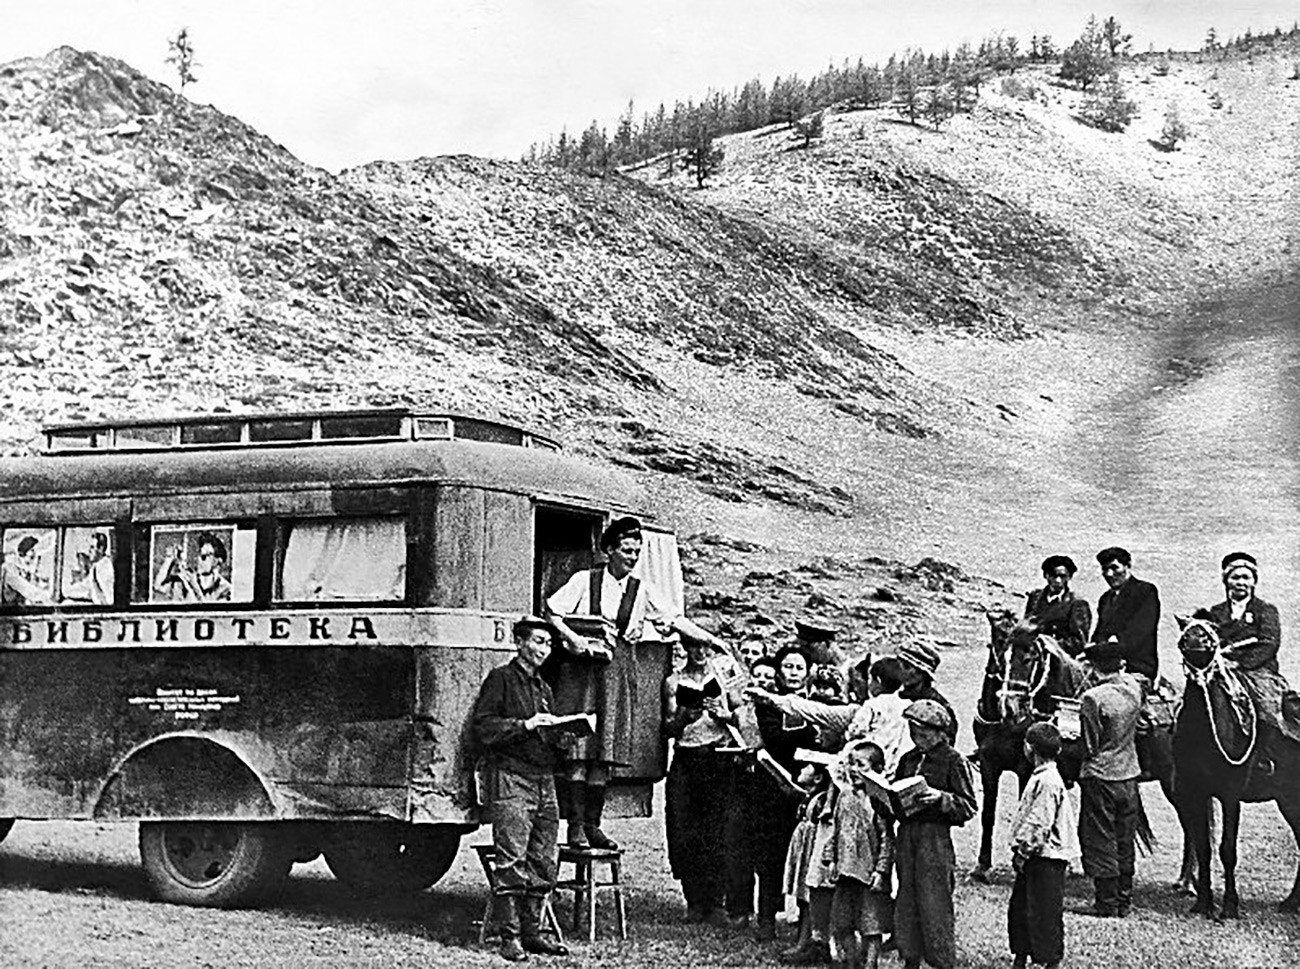 Mobile library at the Dyany Dyol kolkhoz, Altai Territory, 1937-1939.